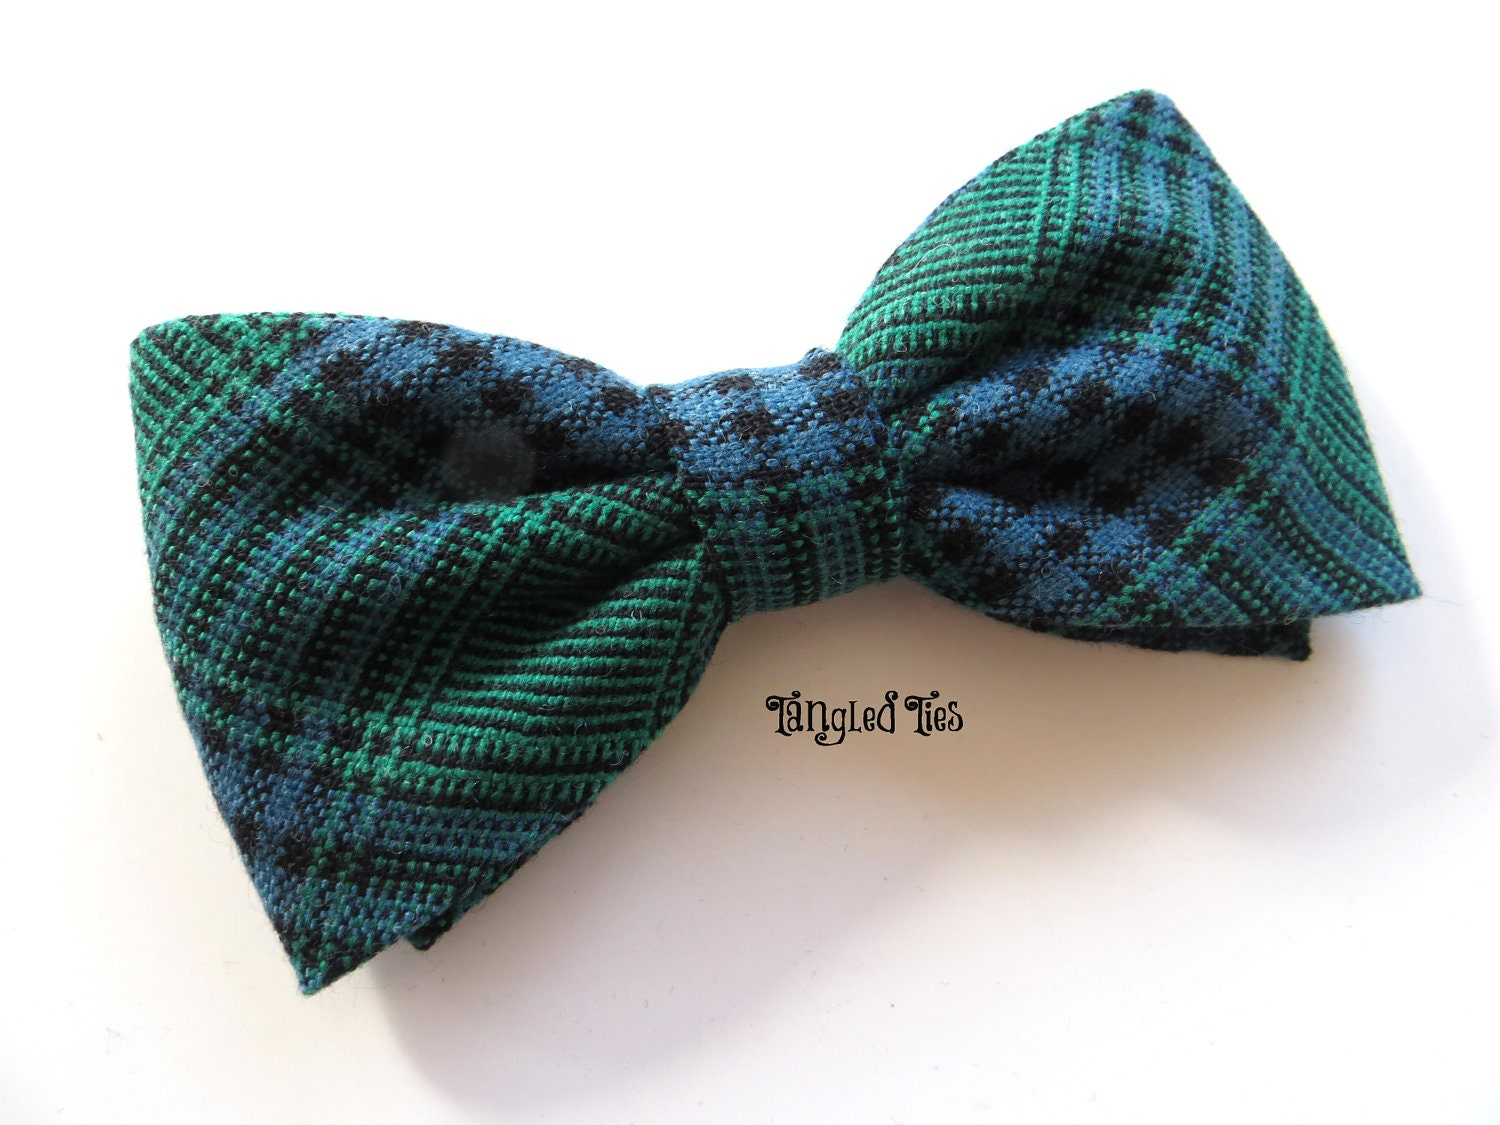 Ties have progressed extensively throughout the years with the re-inception of skinny ties and bow ties. And now, conversational and novelty ties have a place in men's fashion too. And now, conversational and novelty ties have a place in men's fashion too.